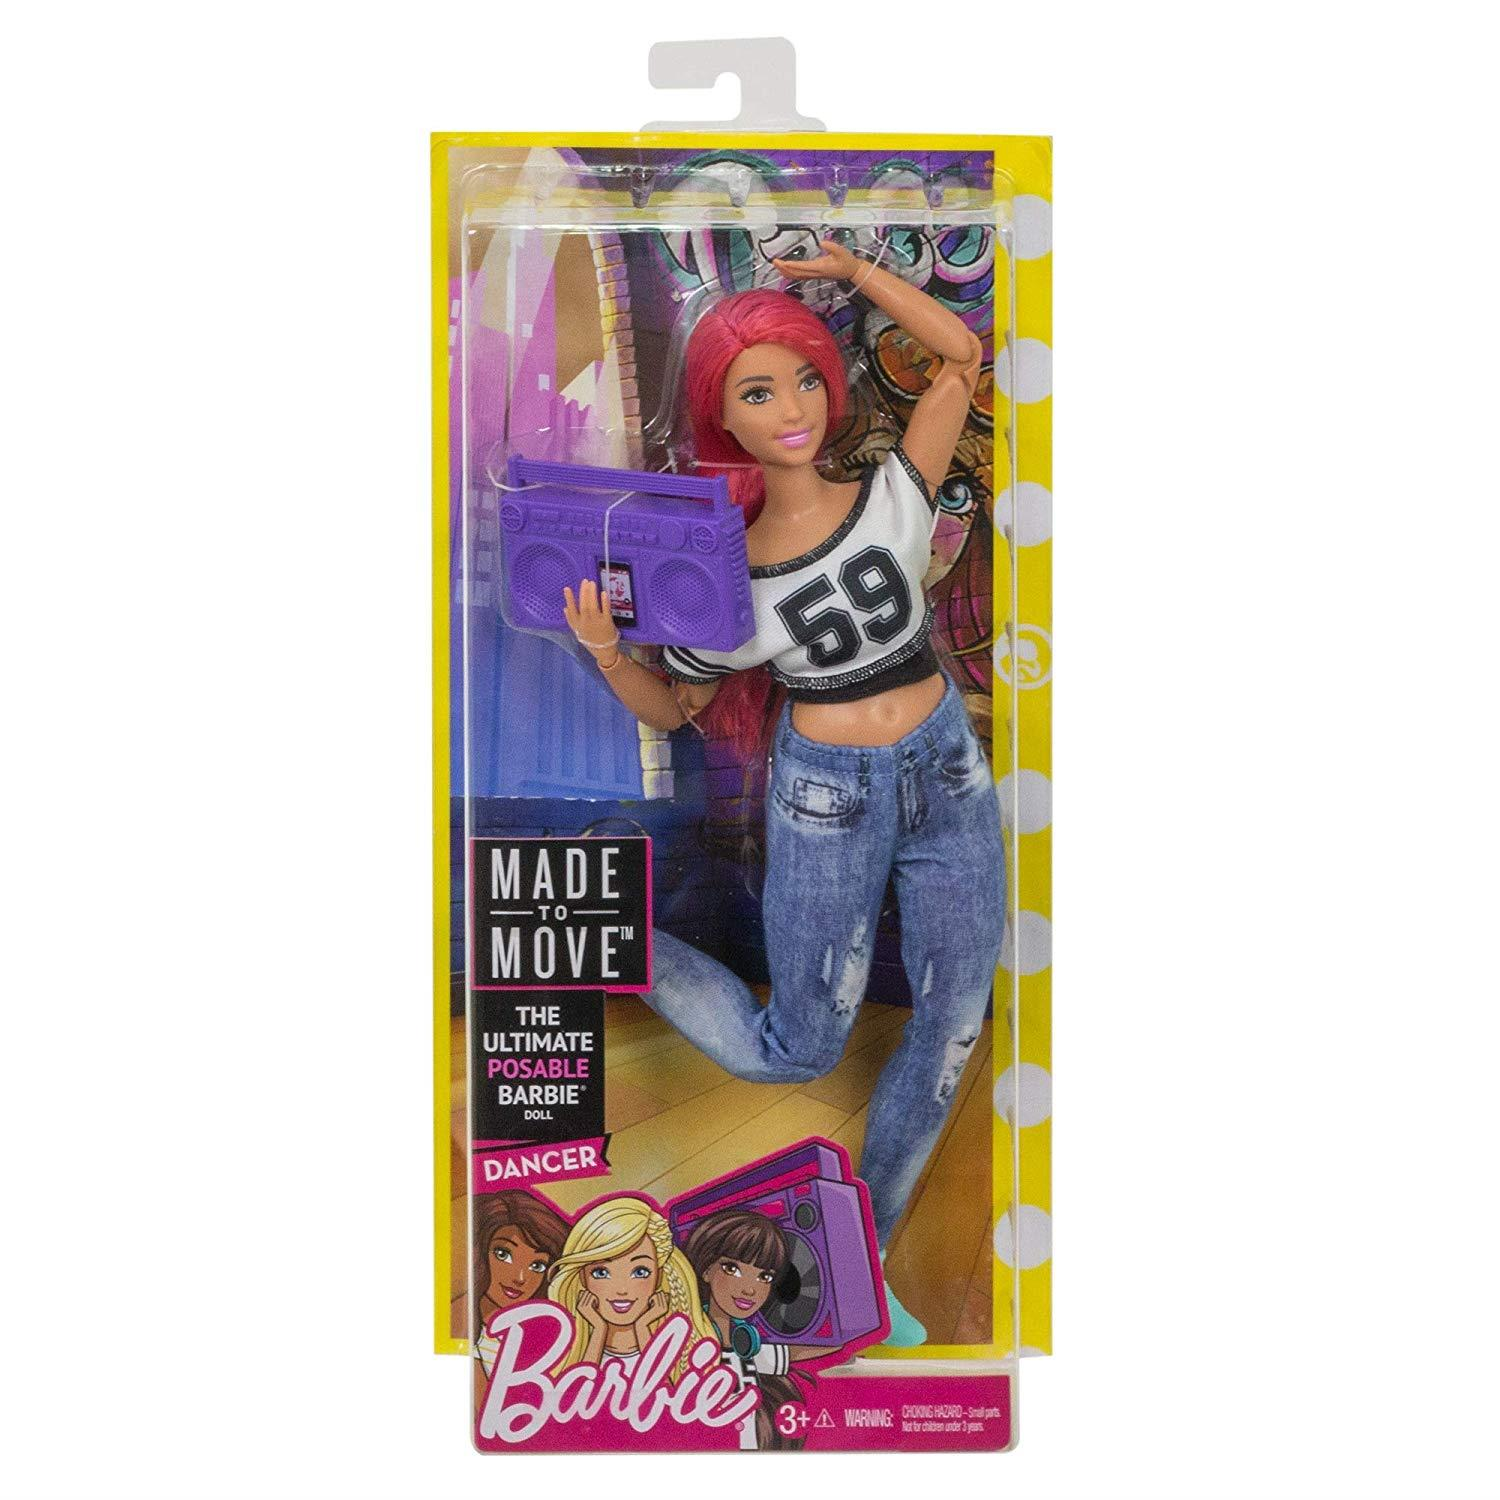 Barbie-Made-to-Move-Collectable-Careers-Fashion-Dolls miniatura 13